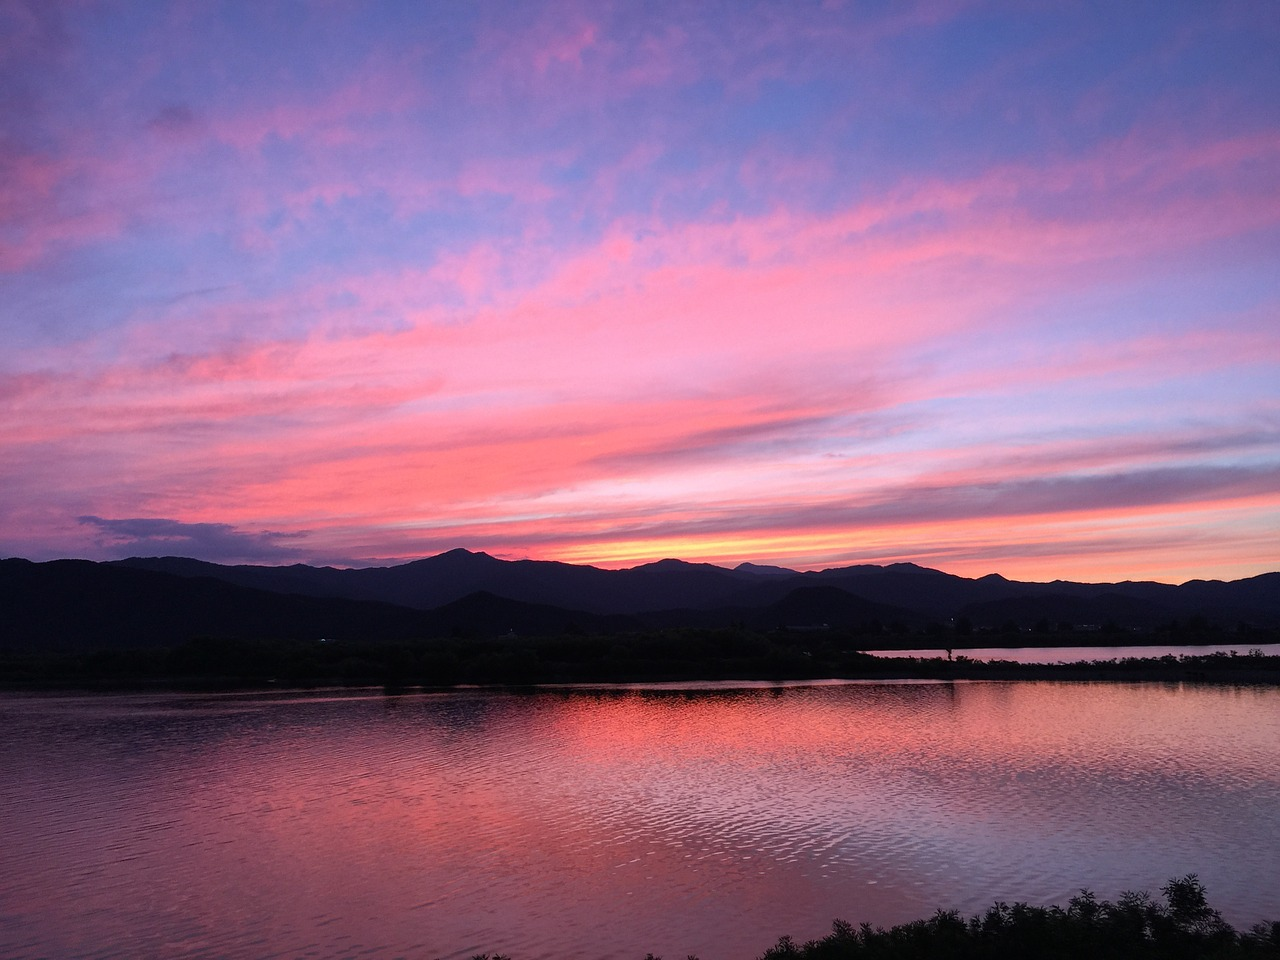 Download free photo of Glow,sunset,view,pink sunset,lake - from needpix.com